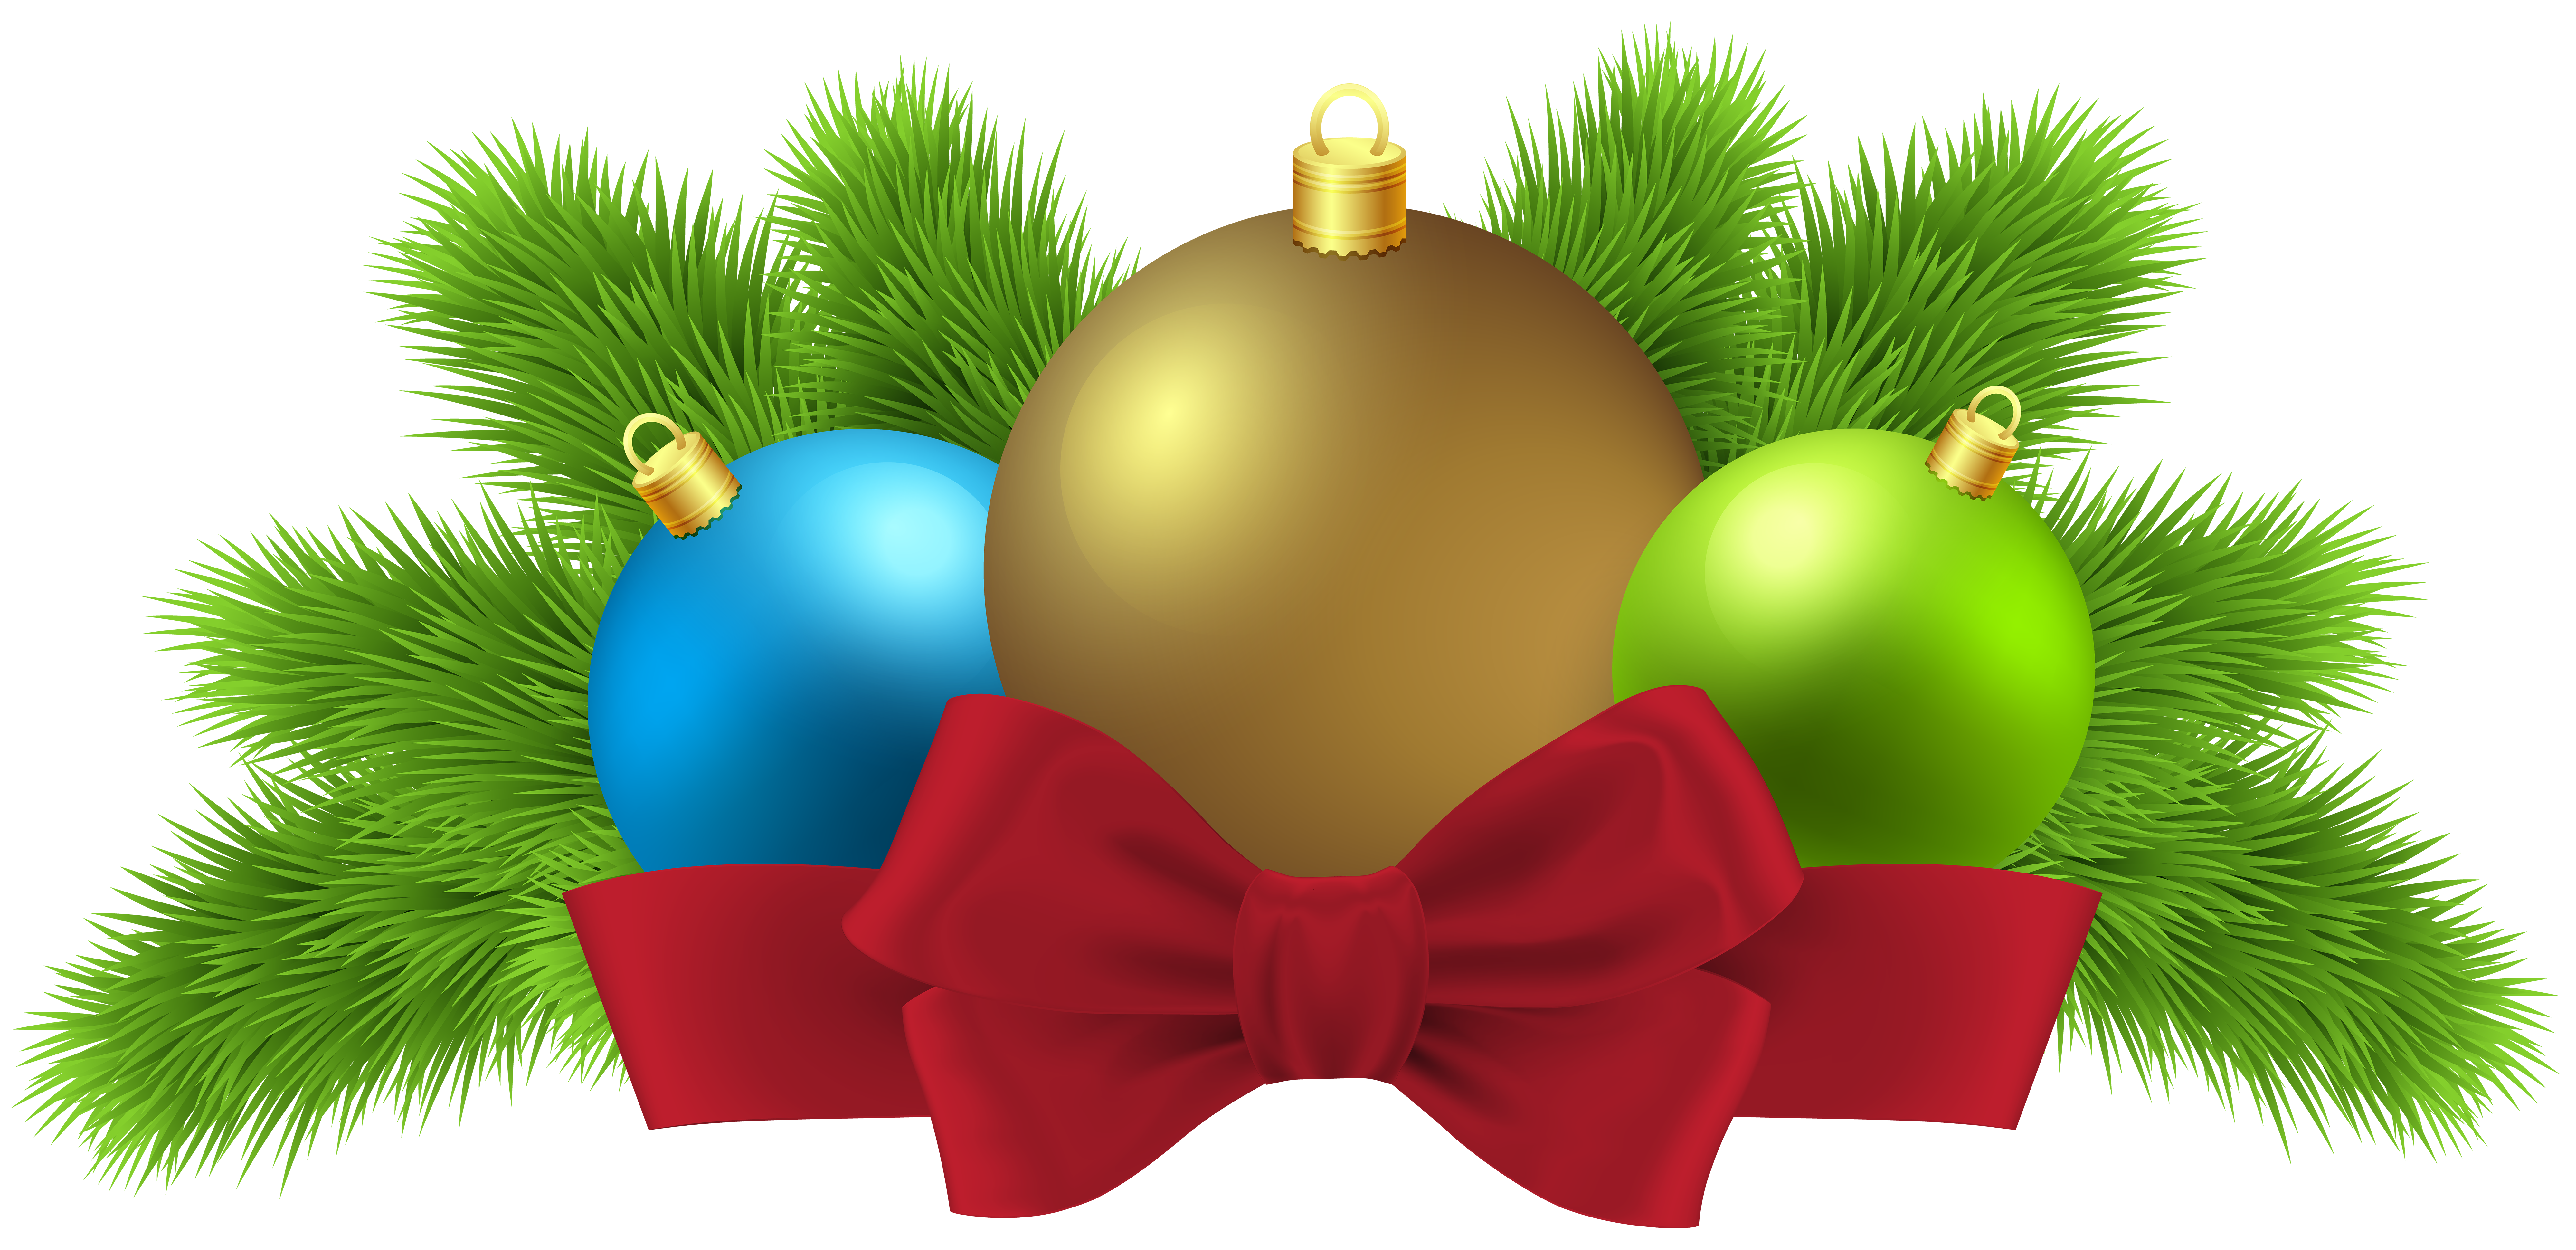 Christmas numbers clipart picture library stock Christmas Balls Deco PNG Clip Art Image | Gallery Yopriceville ... picture library stock